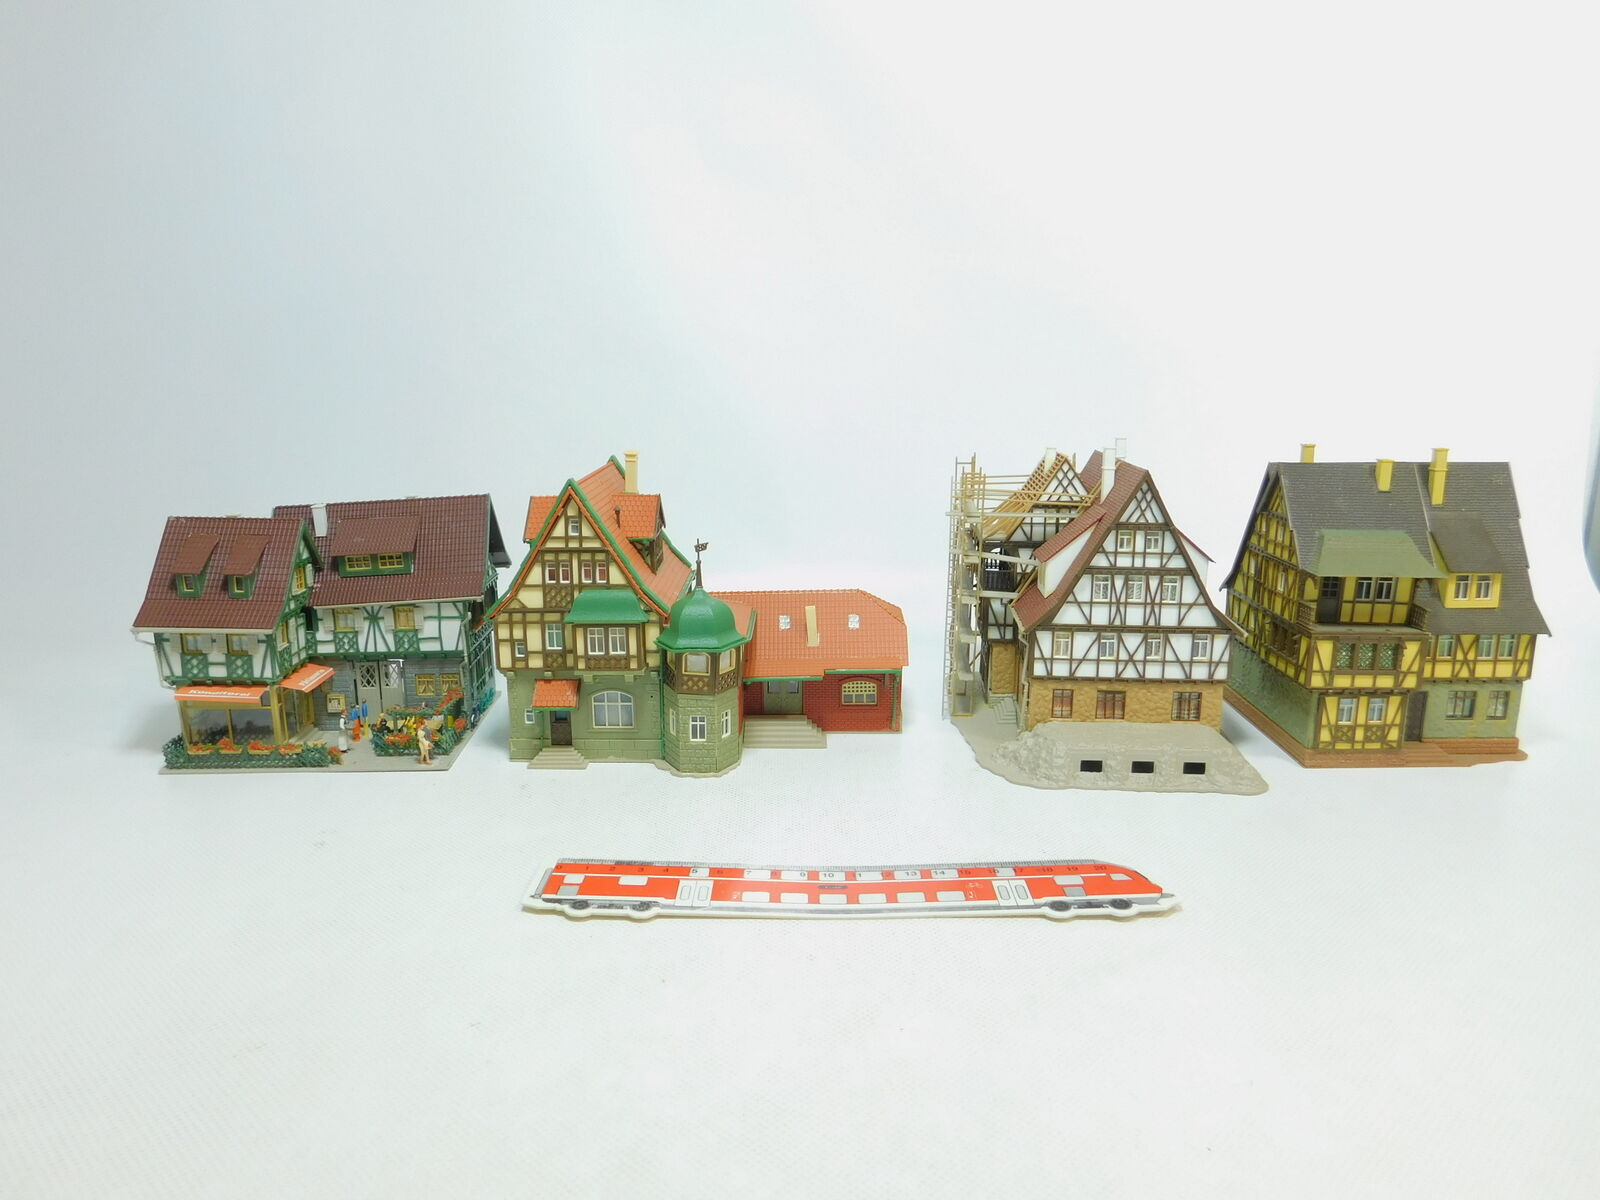 Bm410-3x Vollmer h0 half-timbered house Old House  26866 + 54783 + 29396 + 20817